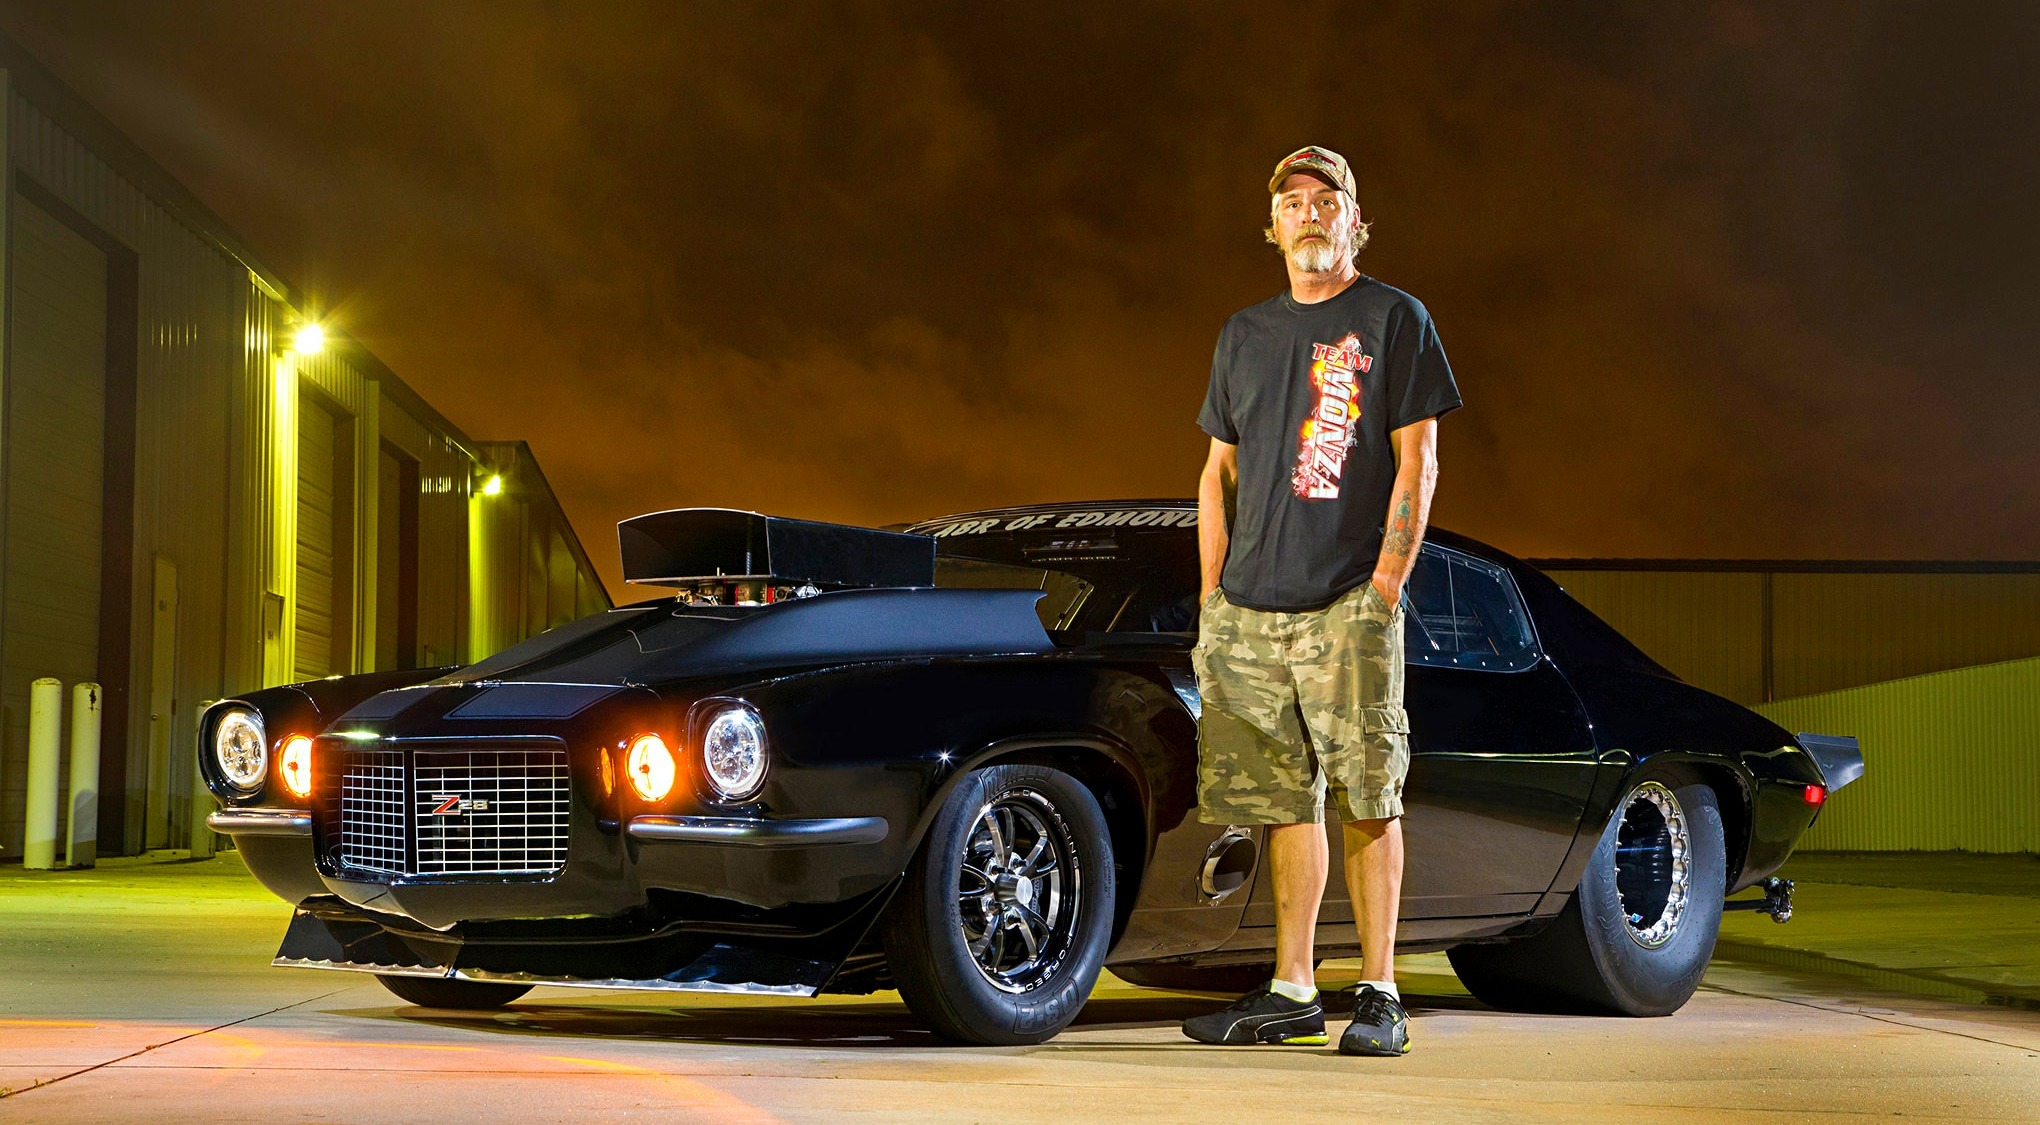 Jerry Monza is standing in an outdoor infront of his 1972 Chevrolet Camaro Rally Sports also named as the Sinister Split Bumper. He is wearing a black t-shirt, a camo half pant and a cap. He has tucked both his hand inside his pocket. Jerry is looking straight in the camera.